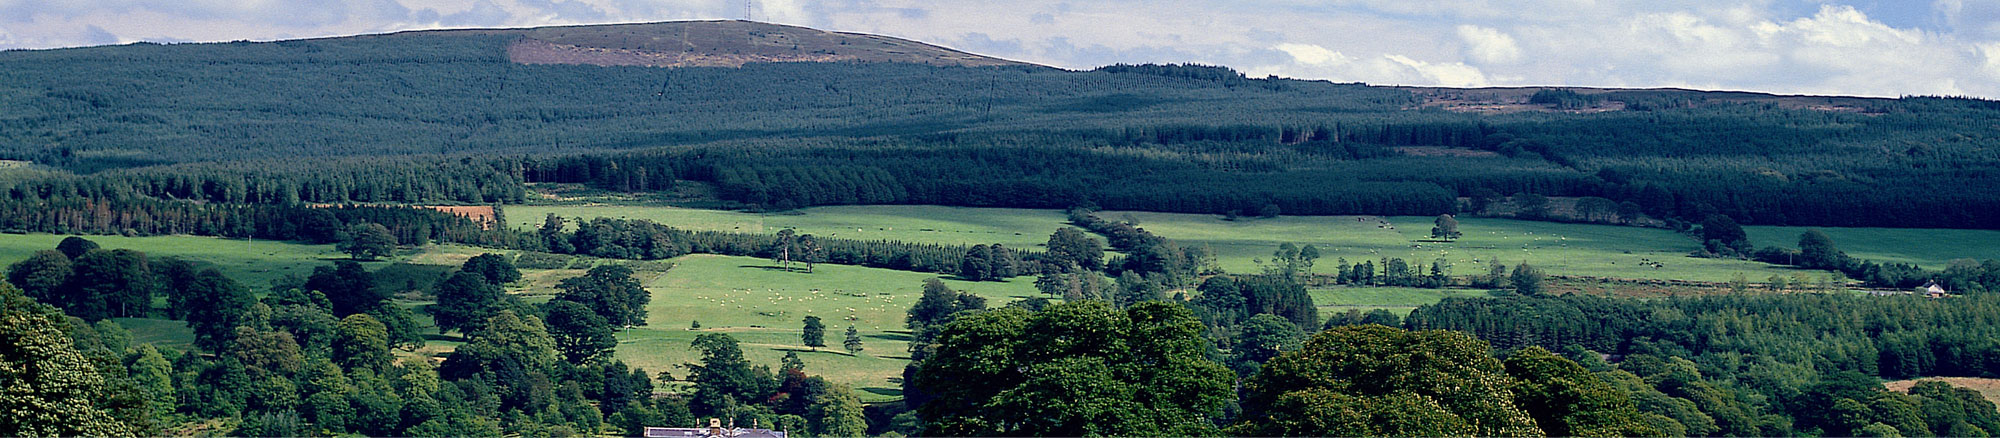 Discover Tyrone & Sperrins